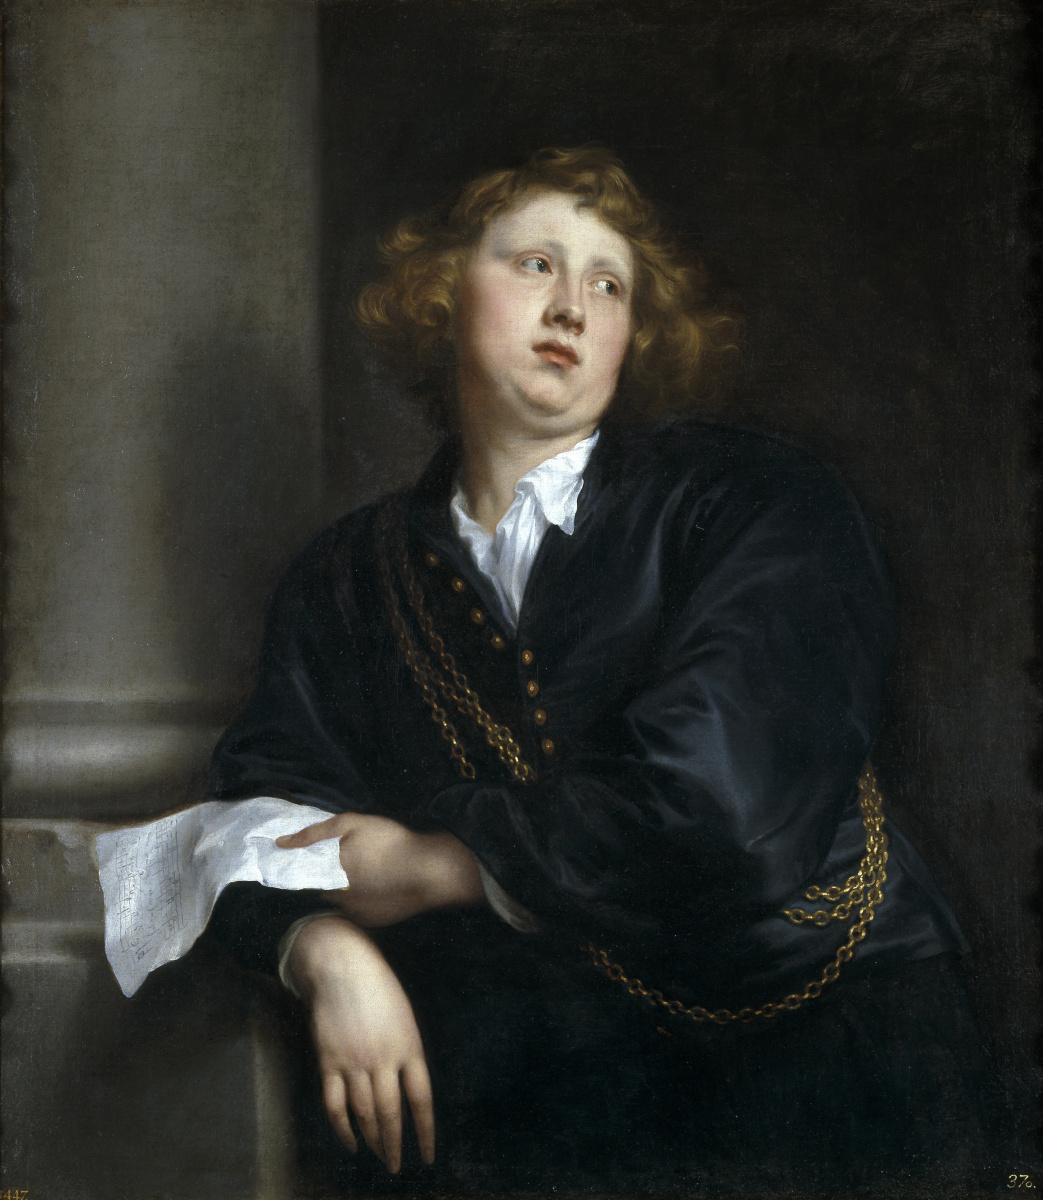 Anthony van Dyck. Henricus Liberti, composer and organist